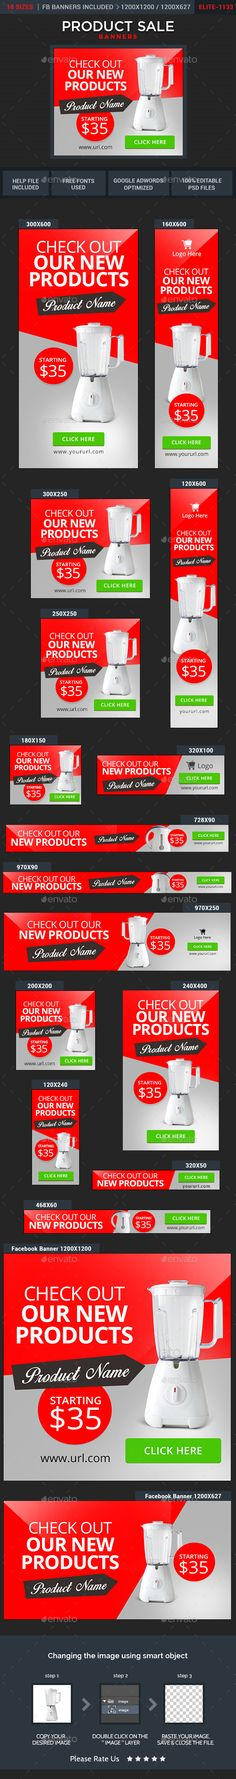 product sale banners pinterest banners sale banner and web banners